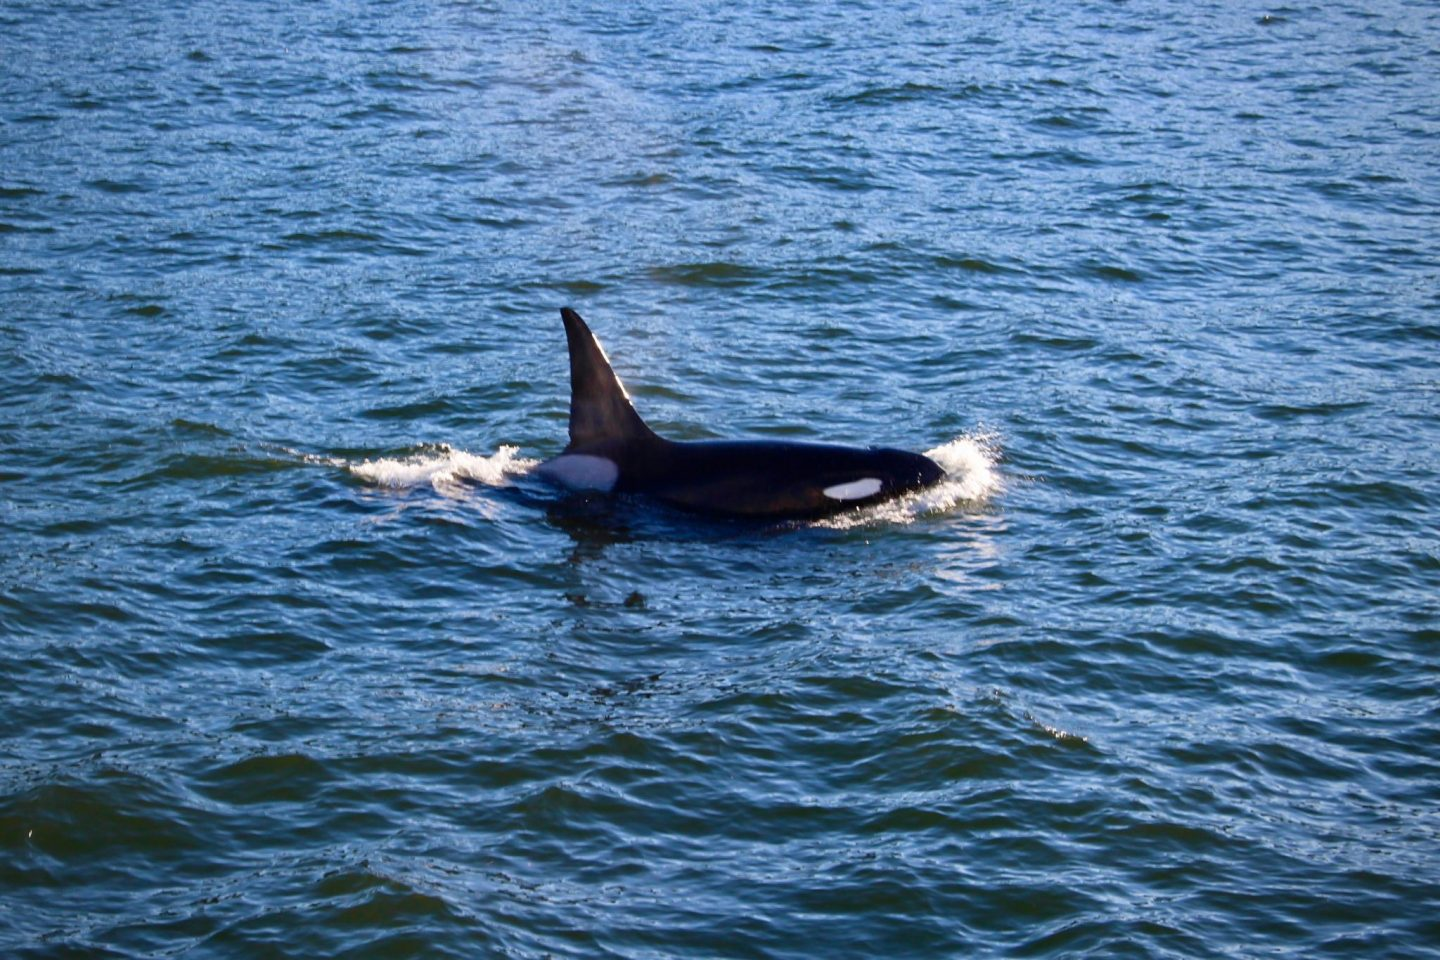 Orca whales near San Juan Islands, Washington | Whale Watching | The Spectacular Adventurer